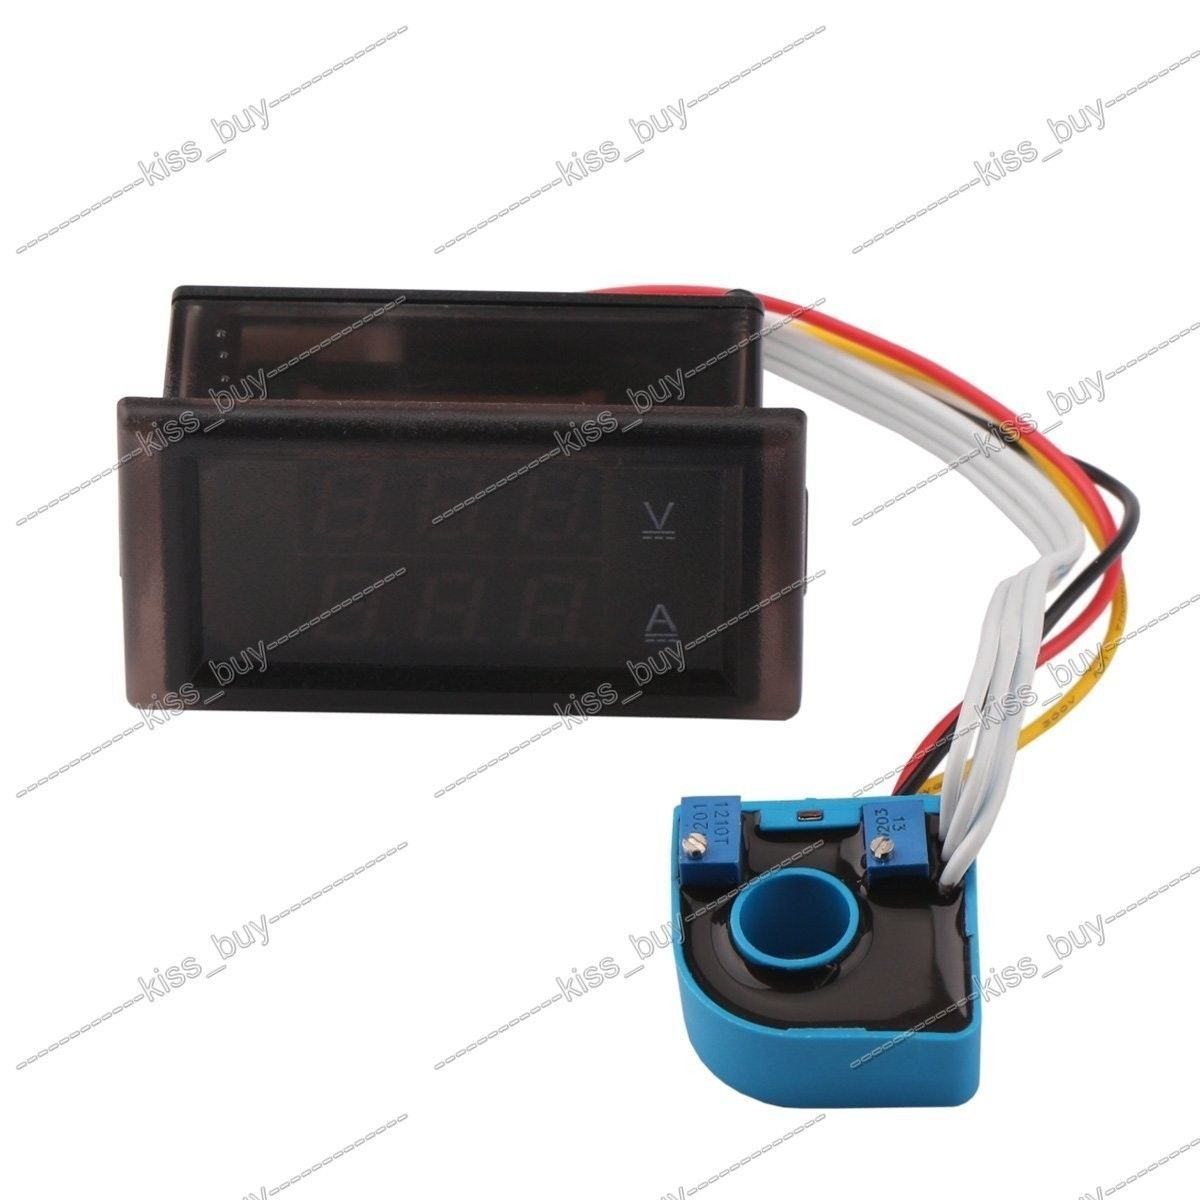 small resolution of dc 0 600v 100a volt amp meter dual display voltage current 12v 24v car voltmeter ammeter charge discharge solar battery monitor in integrated circuits from